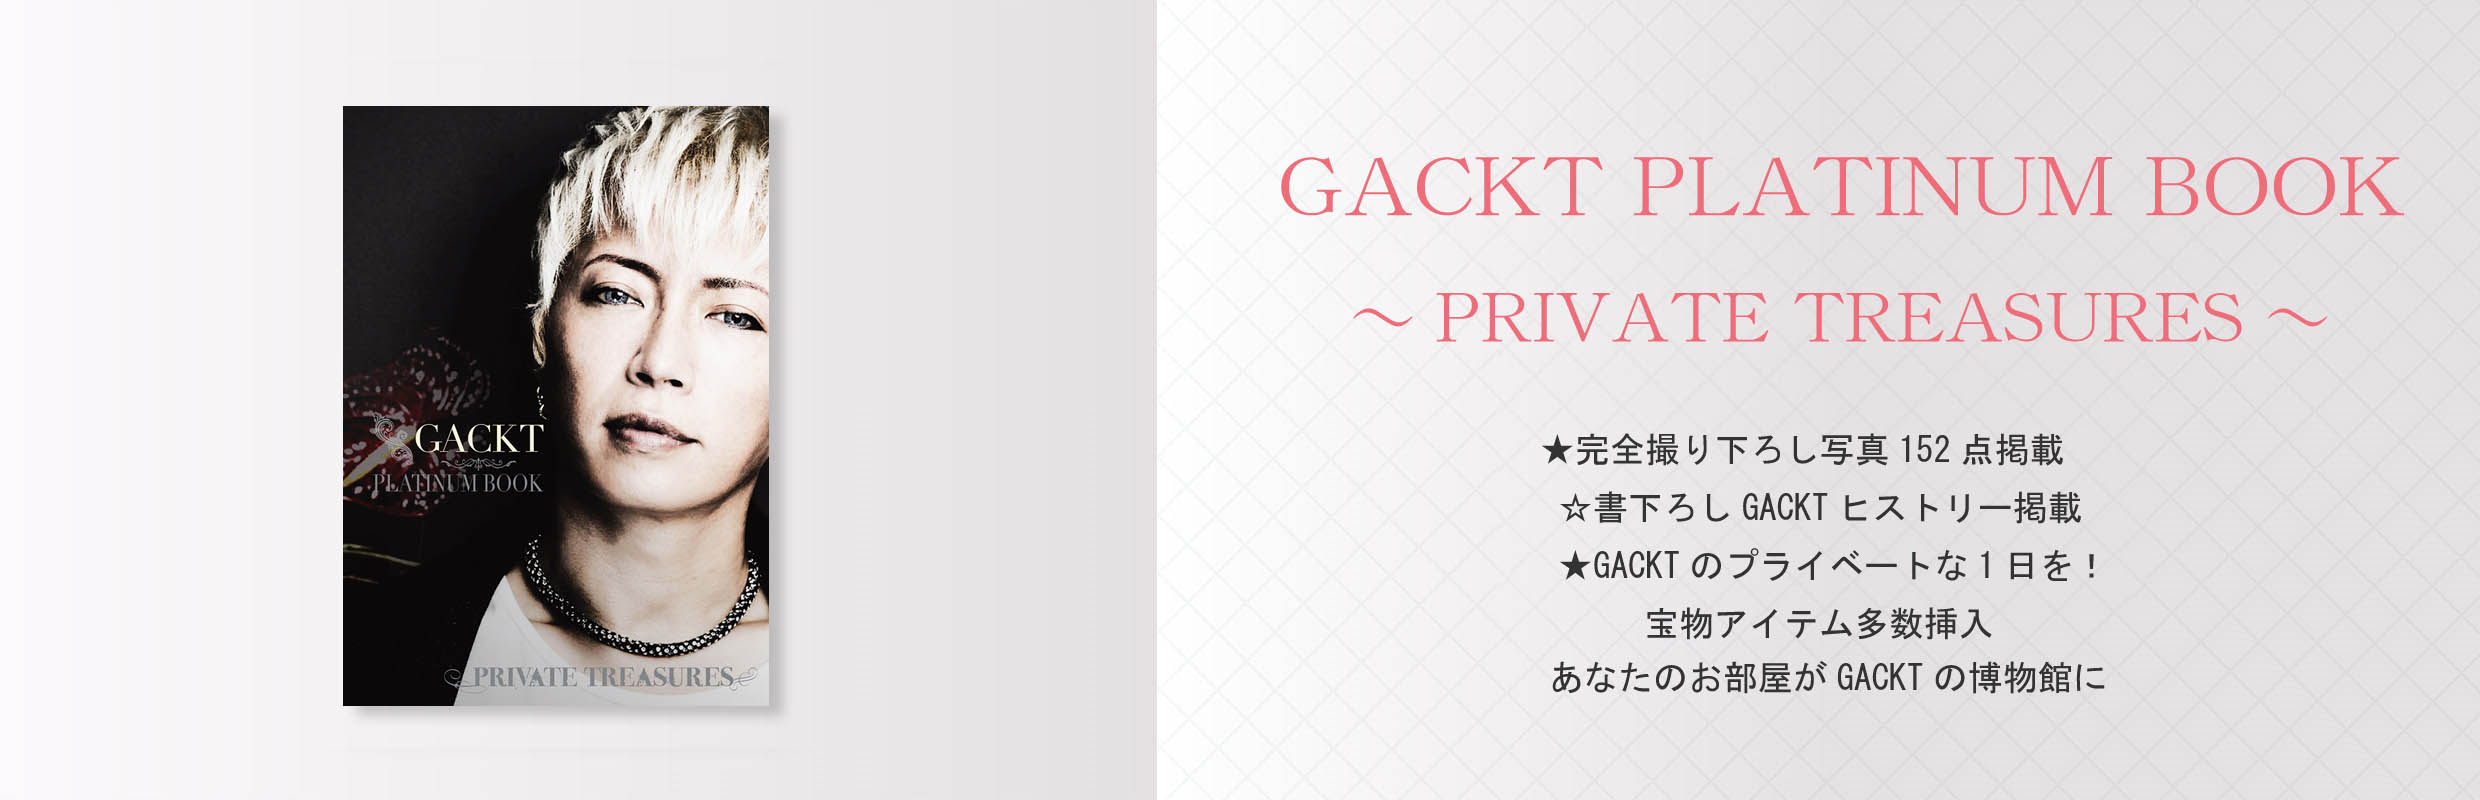 GACKT PLATINUM BOOK ~Private Treasures~ ガクト・プラチナムブック